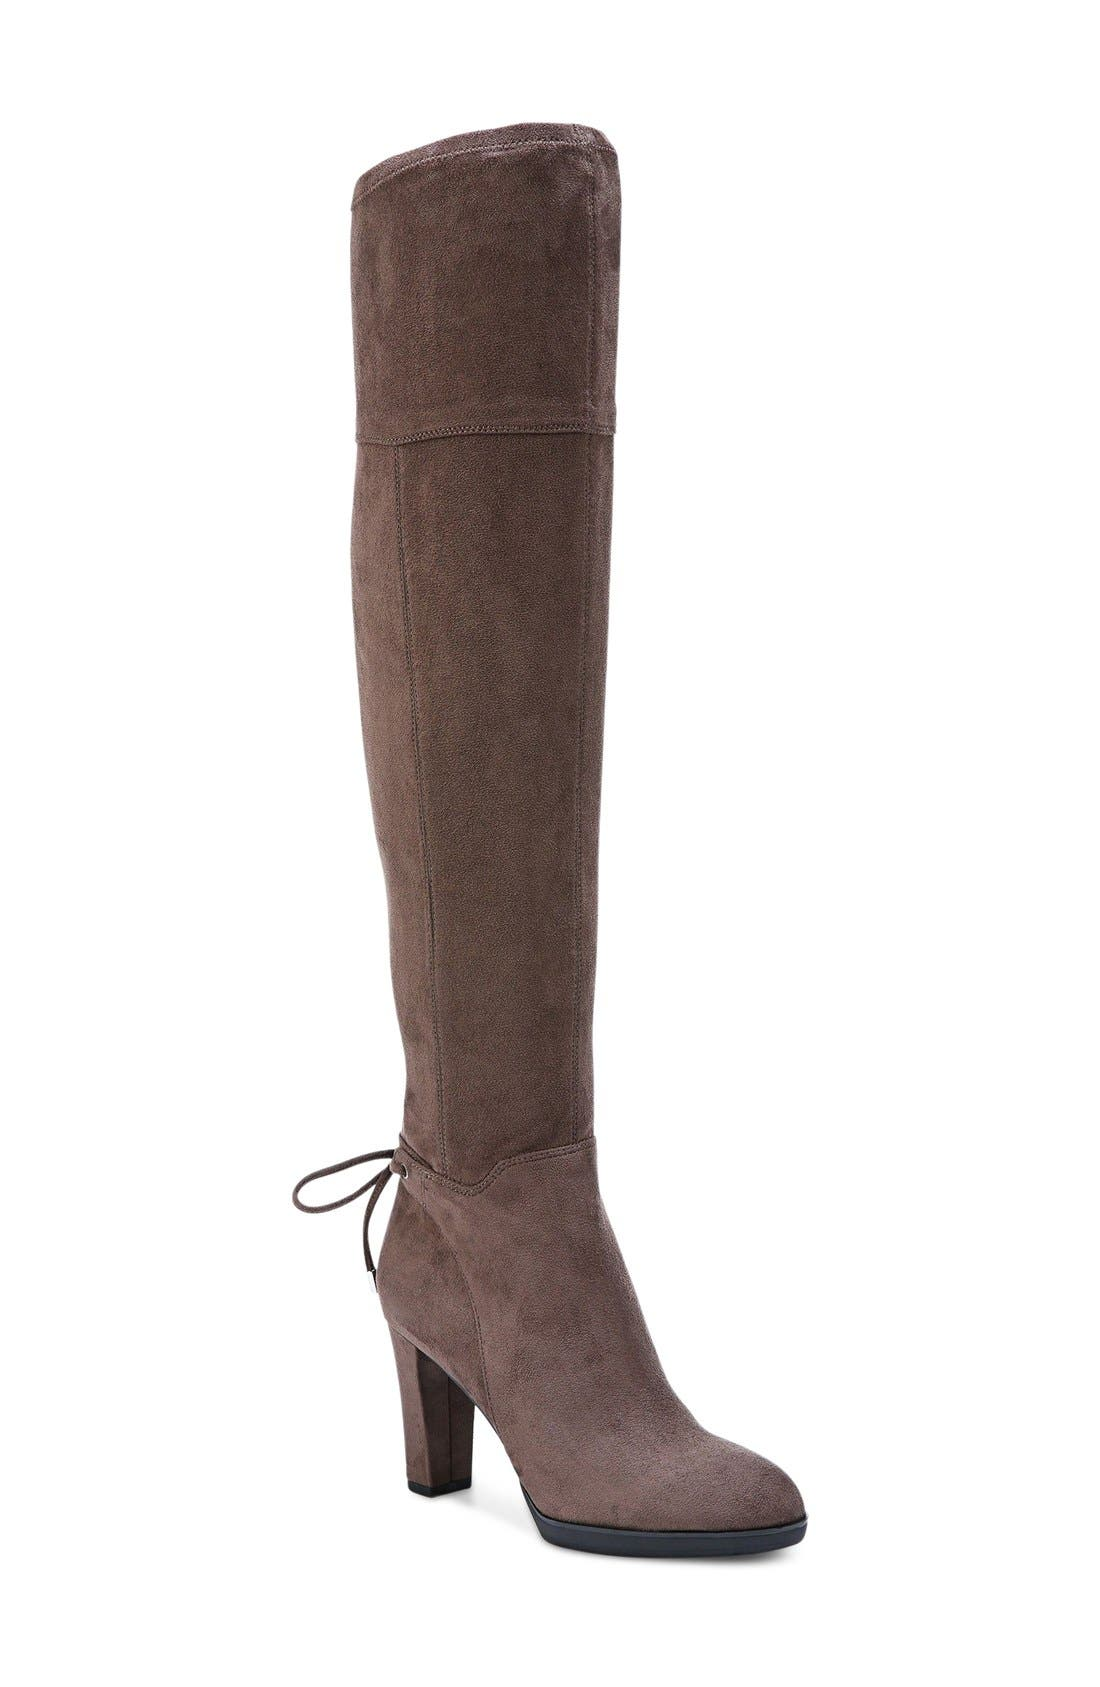 Ivanea Over the Knee Boot,                         Main,                         color, Taupe Suede